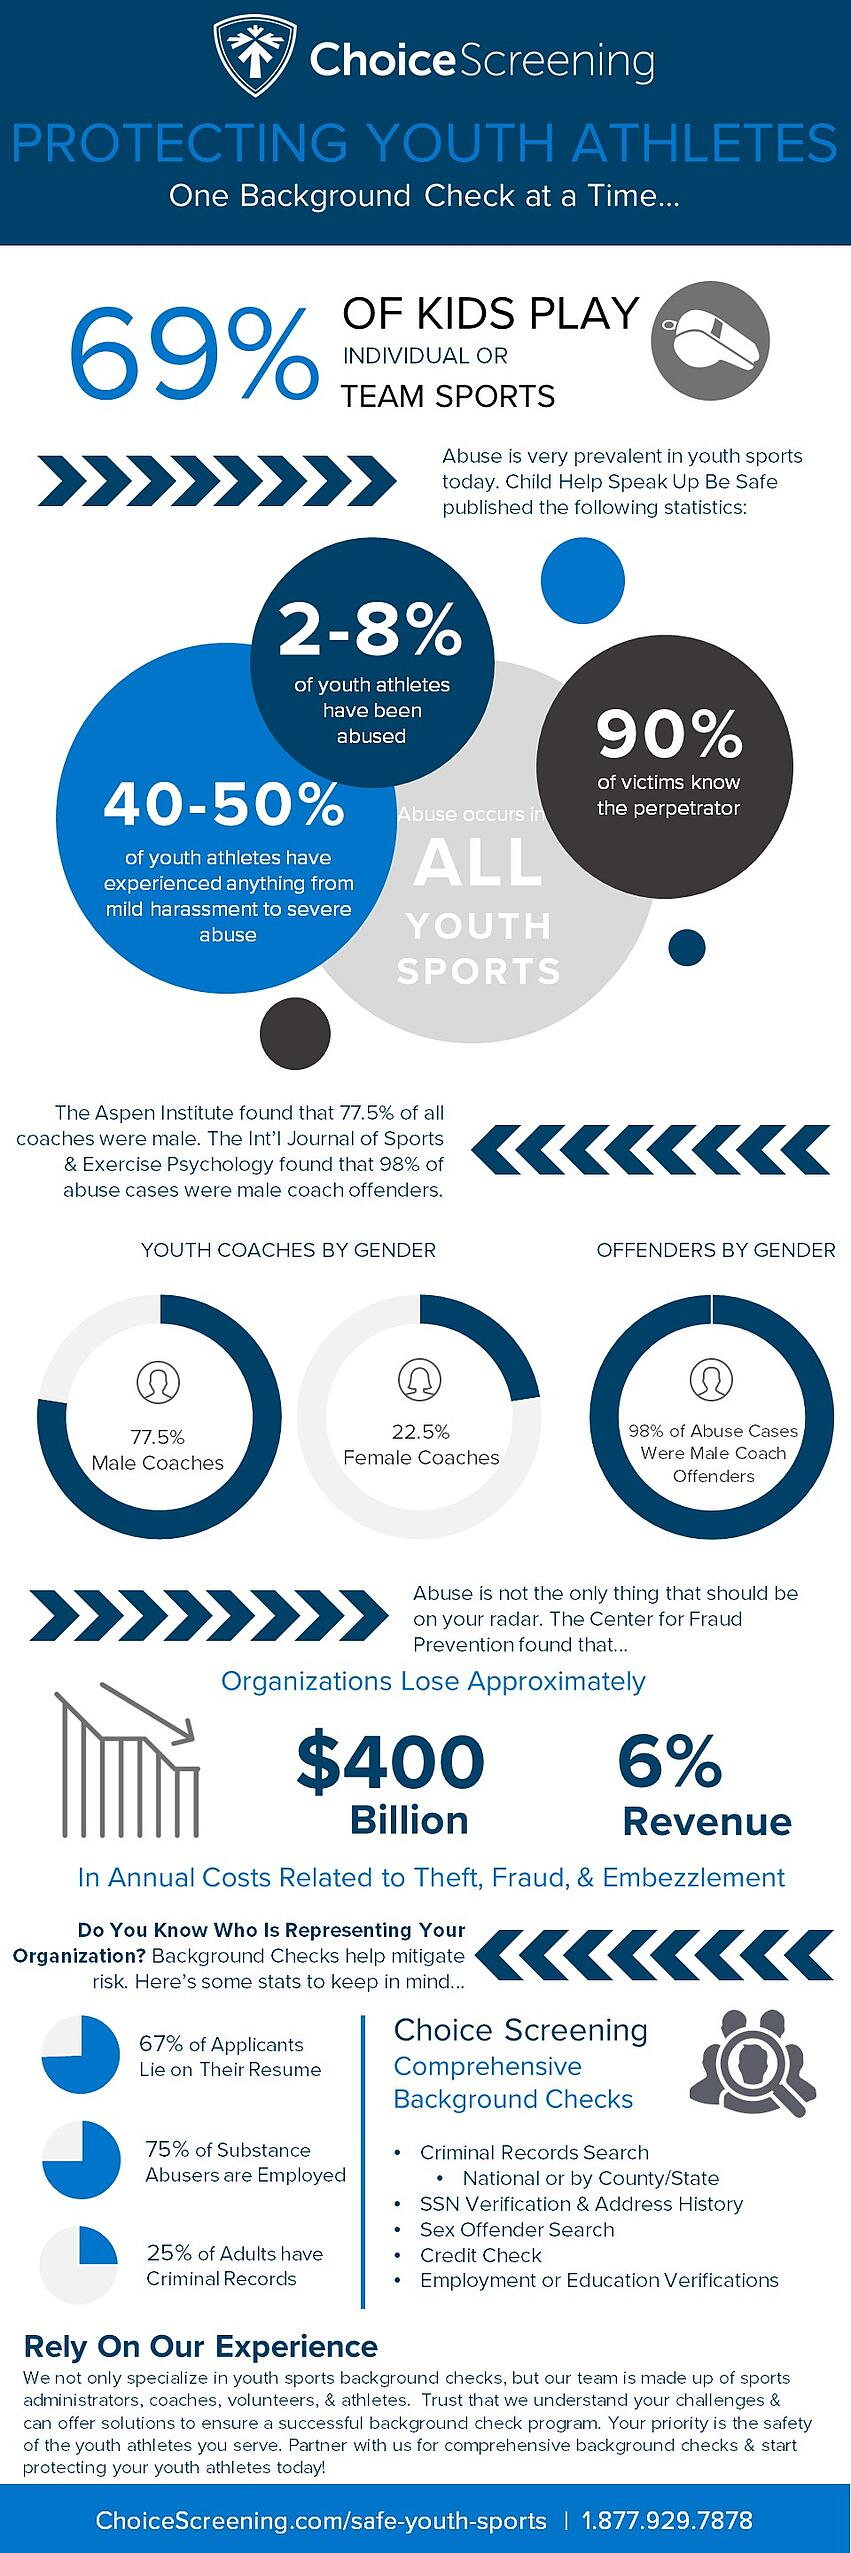 Protecting Youth Athletes Infographic-1